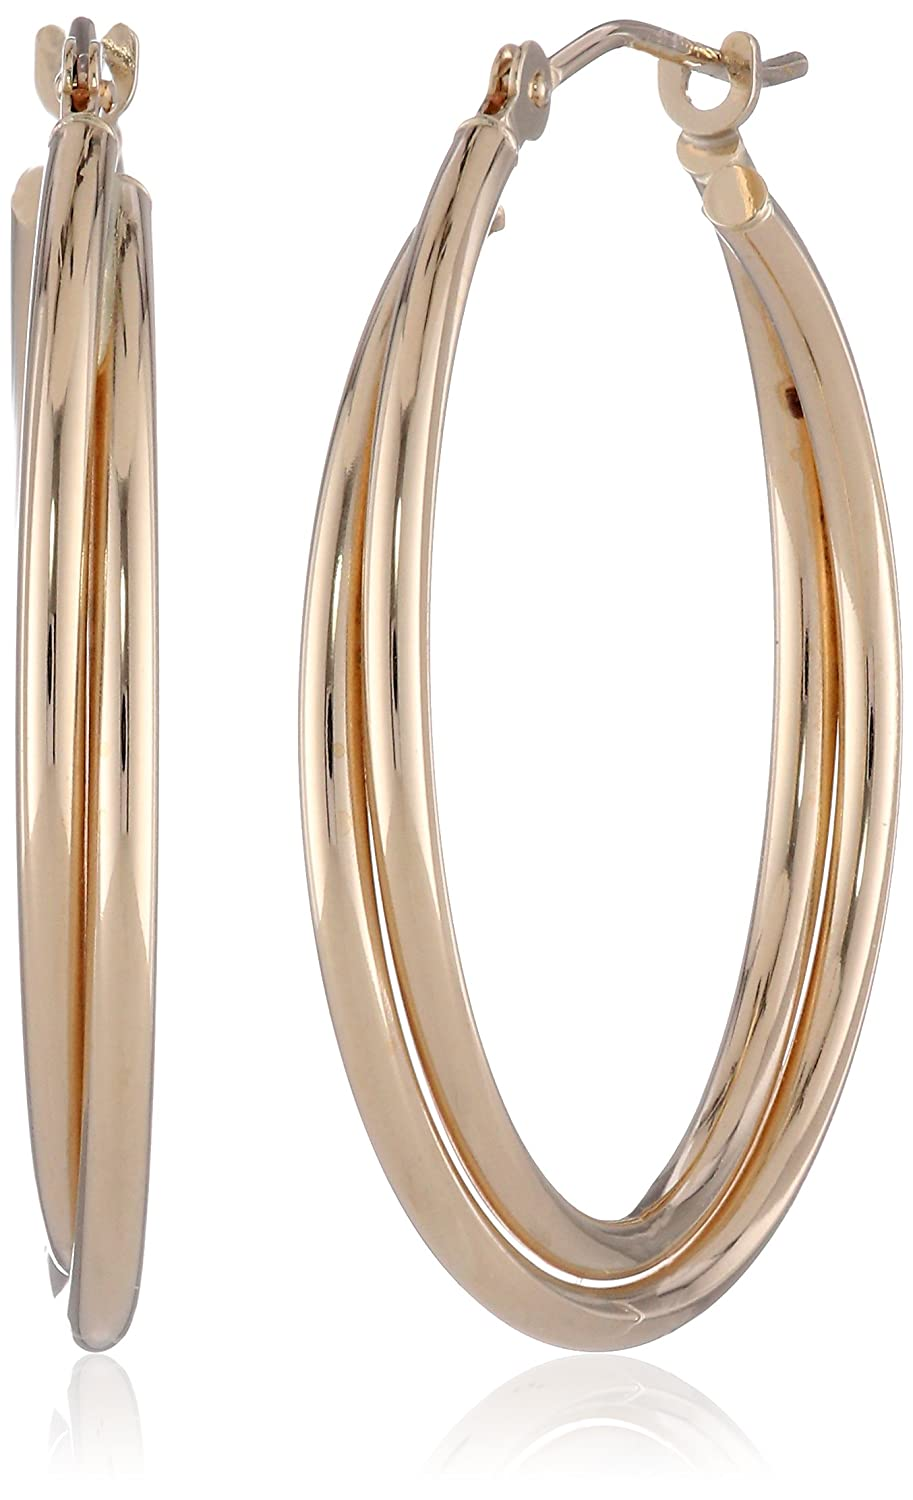 Amazon.com: 14k Yellow Gold Double Hoop Earrings: Hoop Earrings For ...